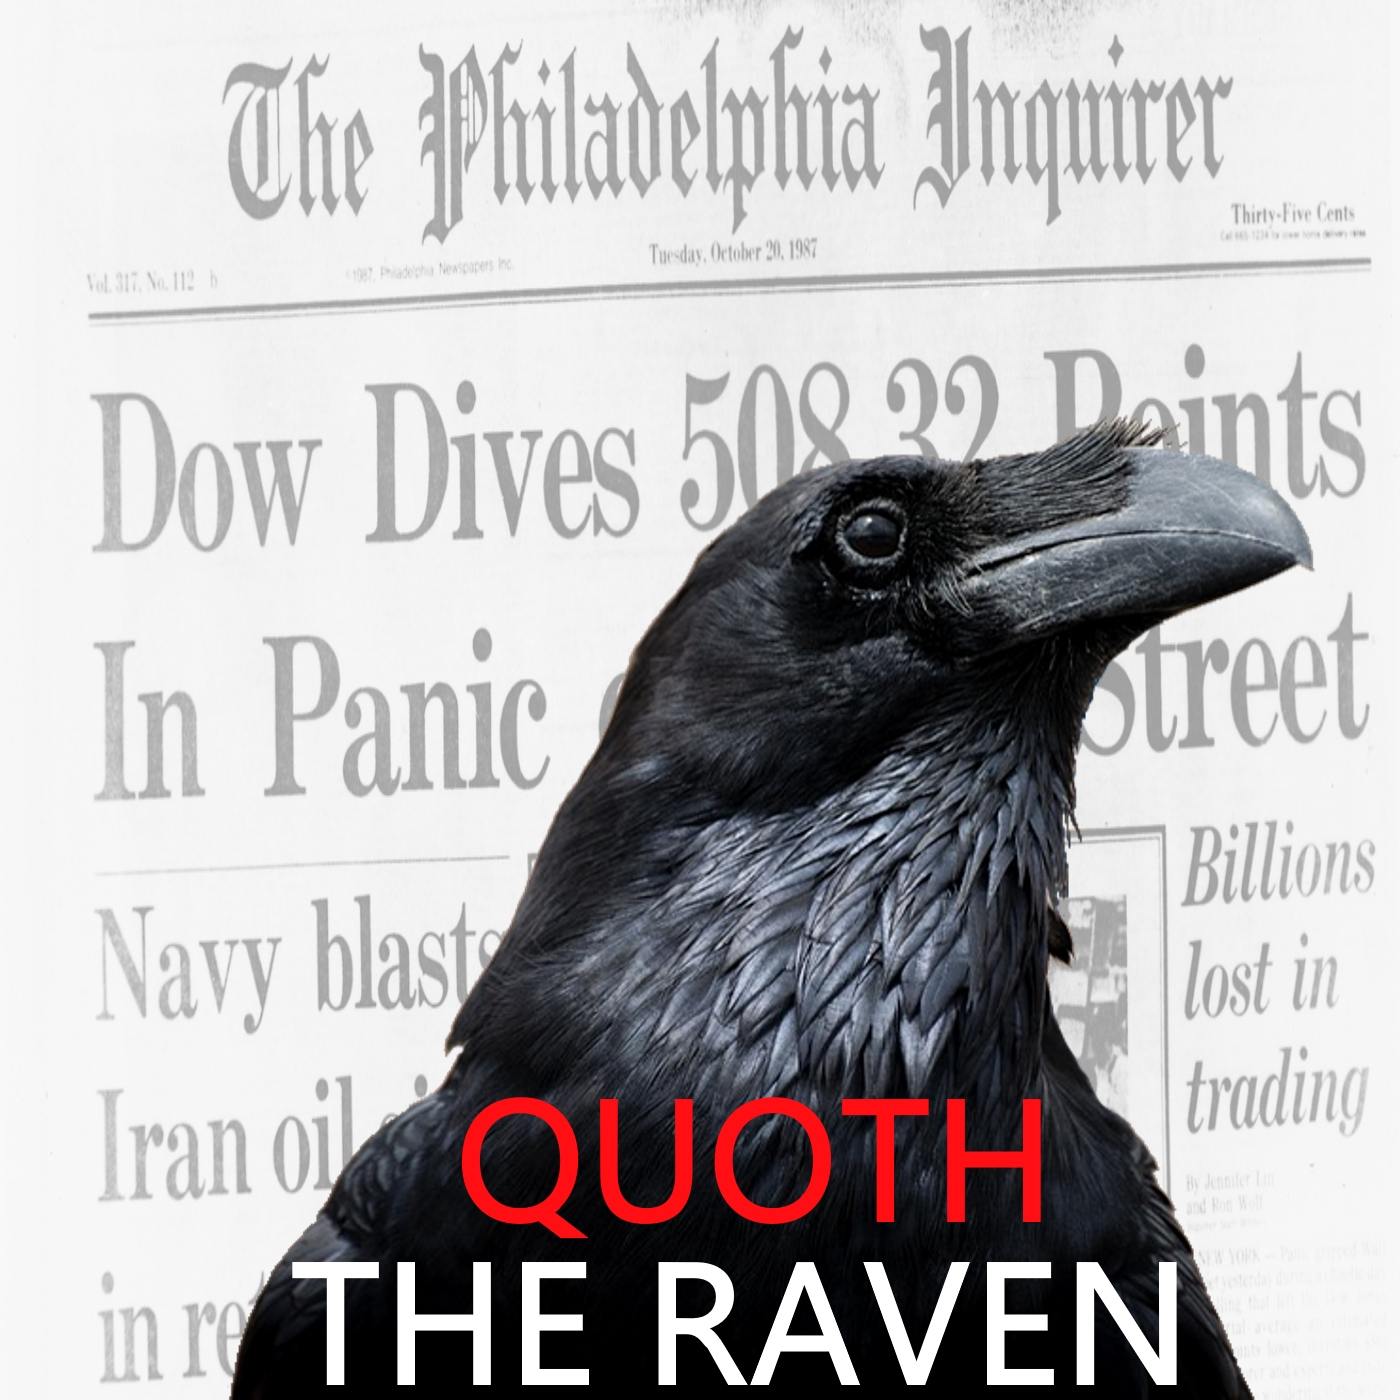 Quoth the Raven #75 - Our Bullshit Economy: Part 4 of 515